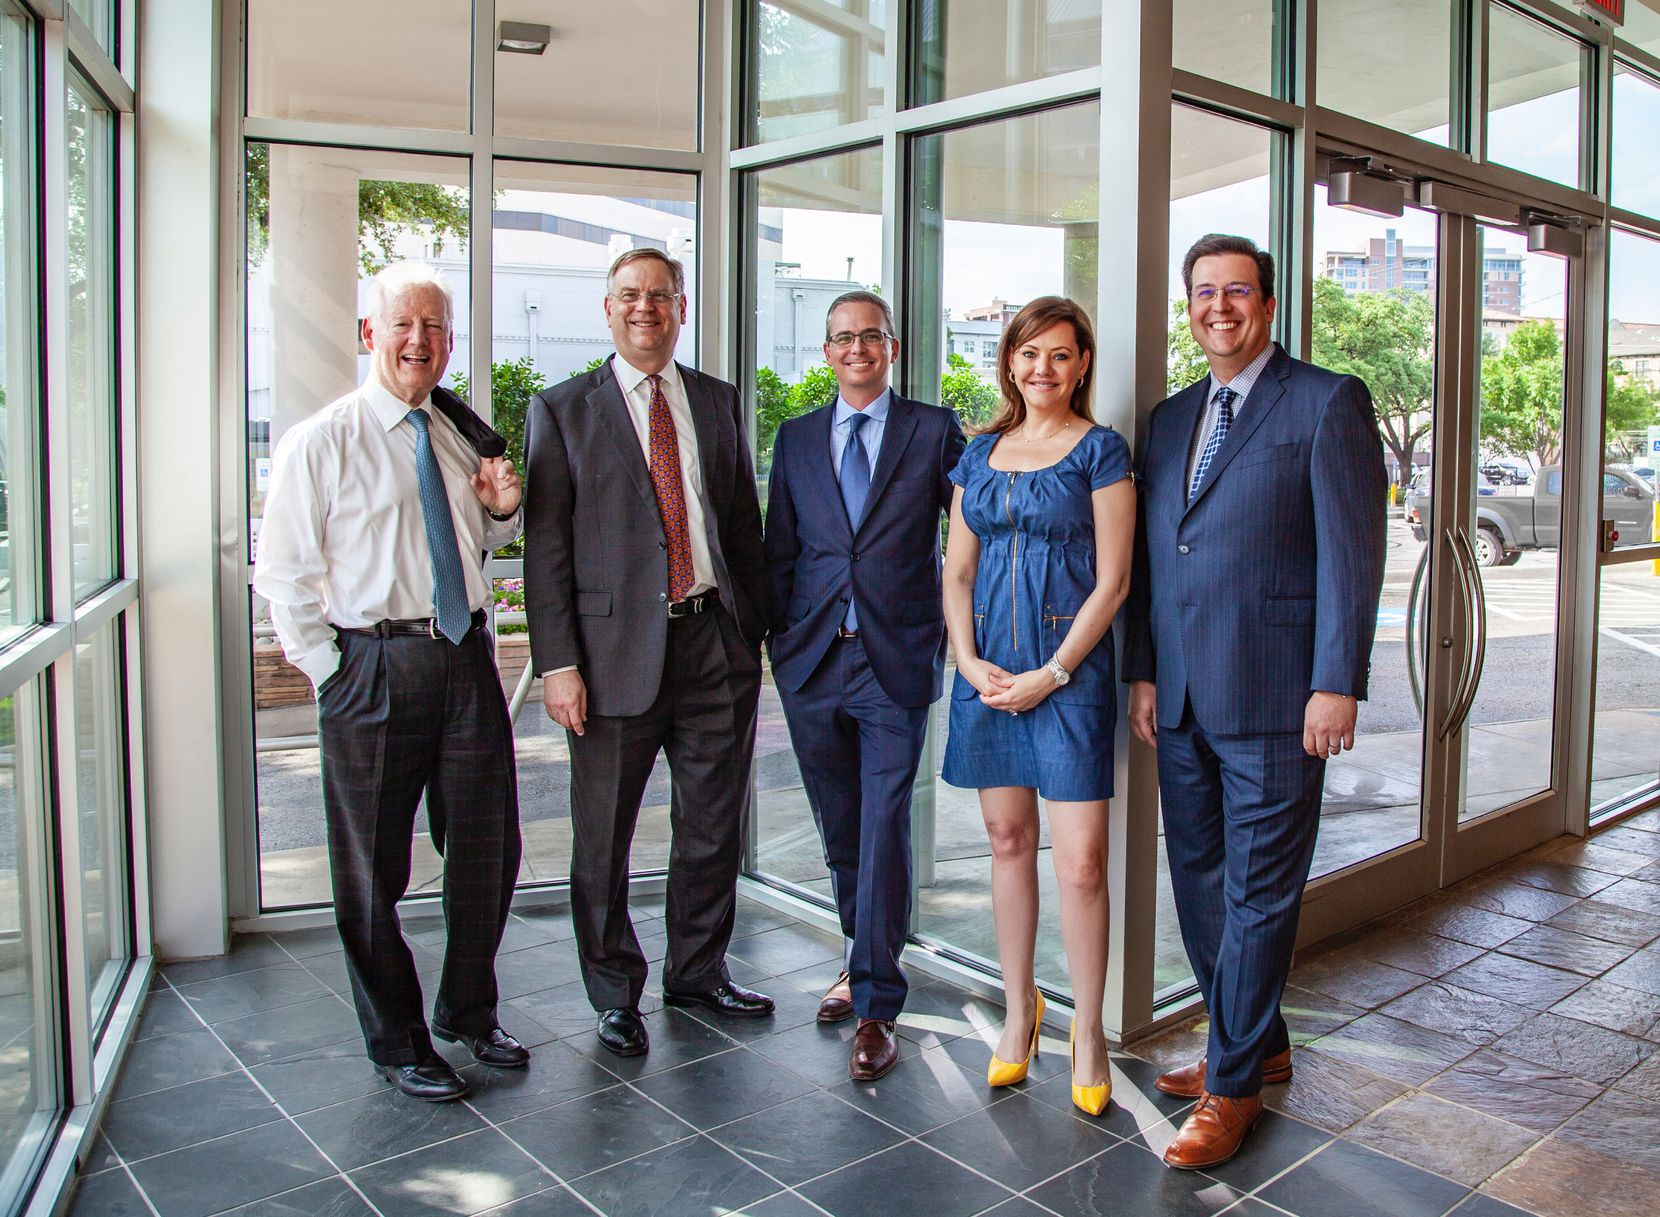 Larry Good, left, is retiring from Dallas architecture firm GFF. His partner Duncan Fulton, to his right, will be the new chairman. Evan Beattie (center) is the new president and Allison Hubbard and Rick Myers will be co-chief operating officers.